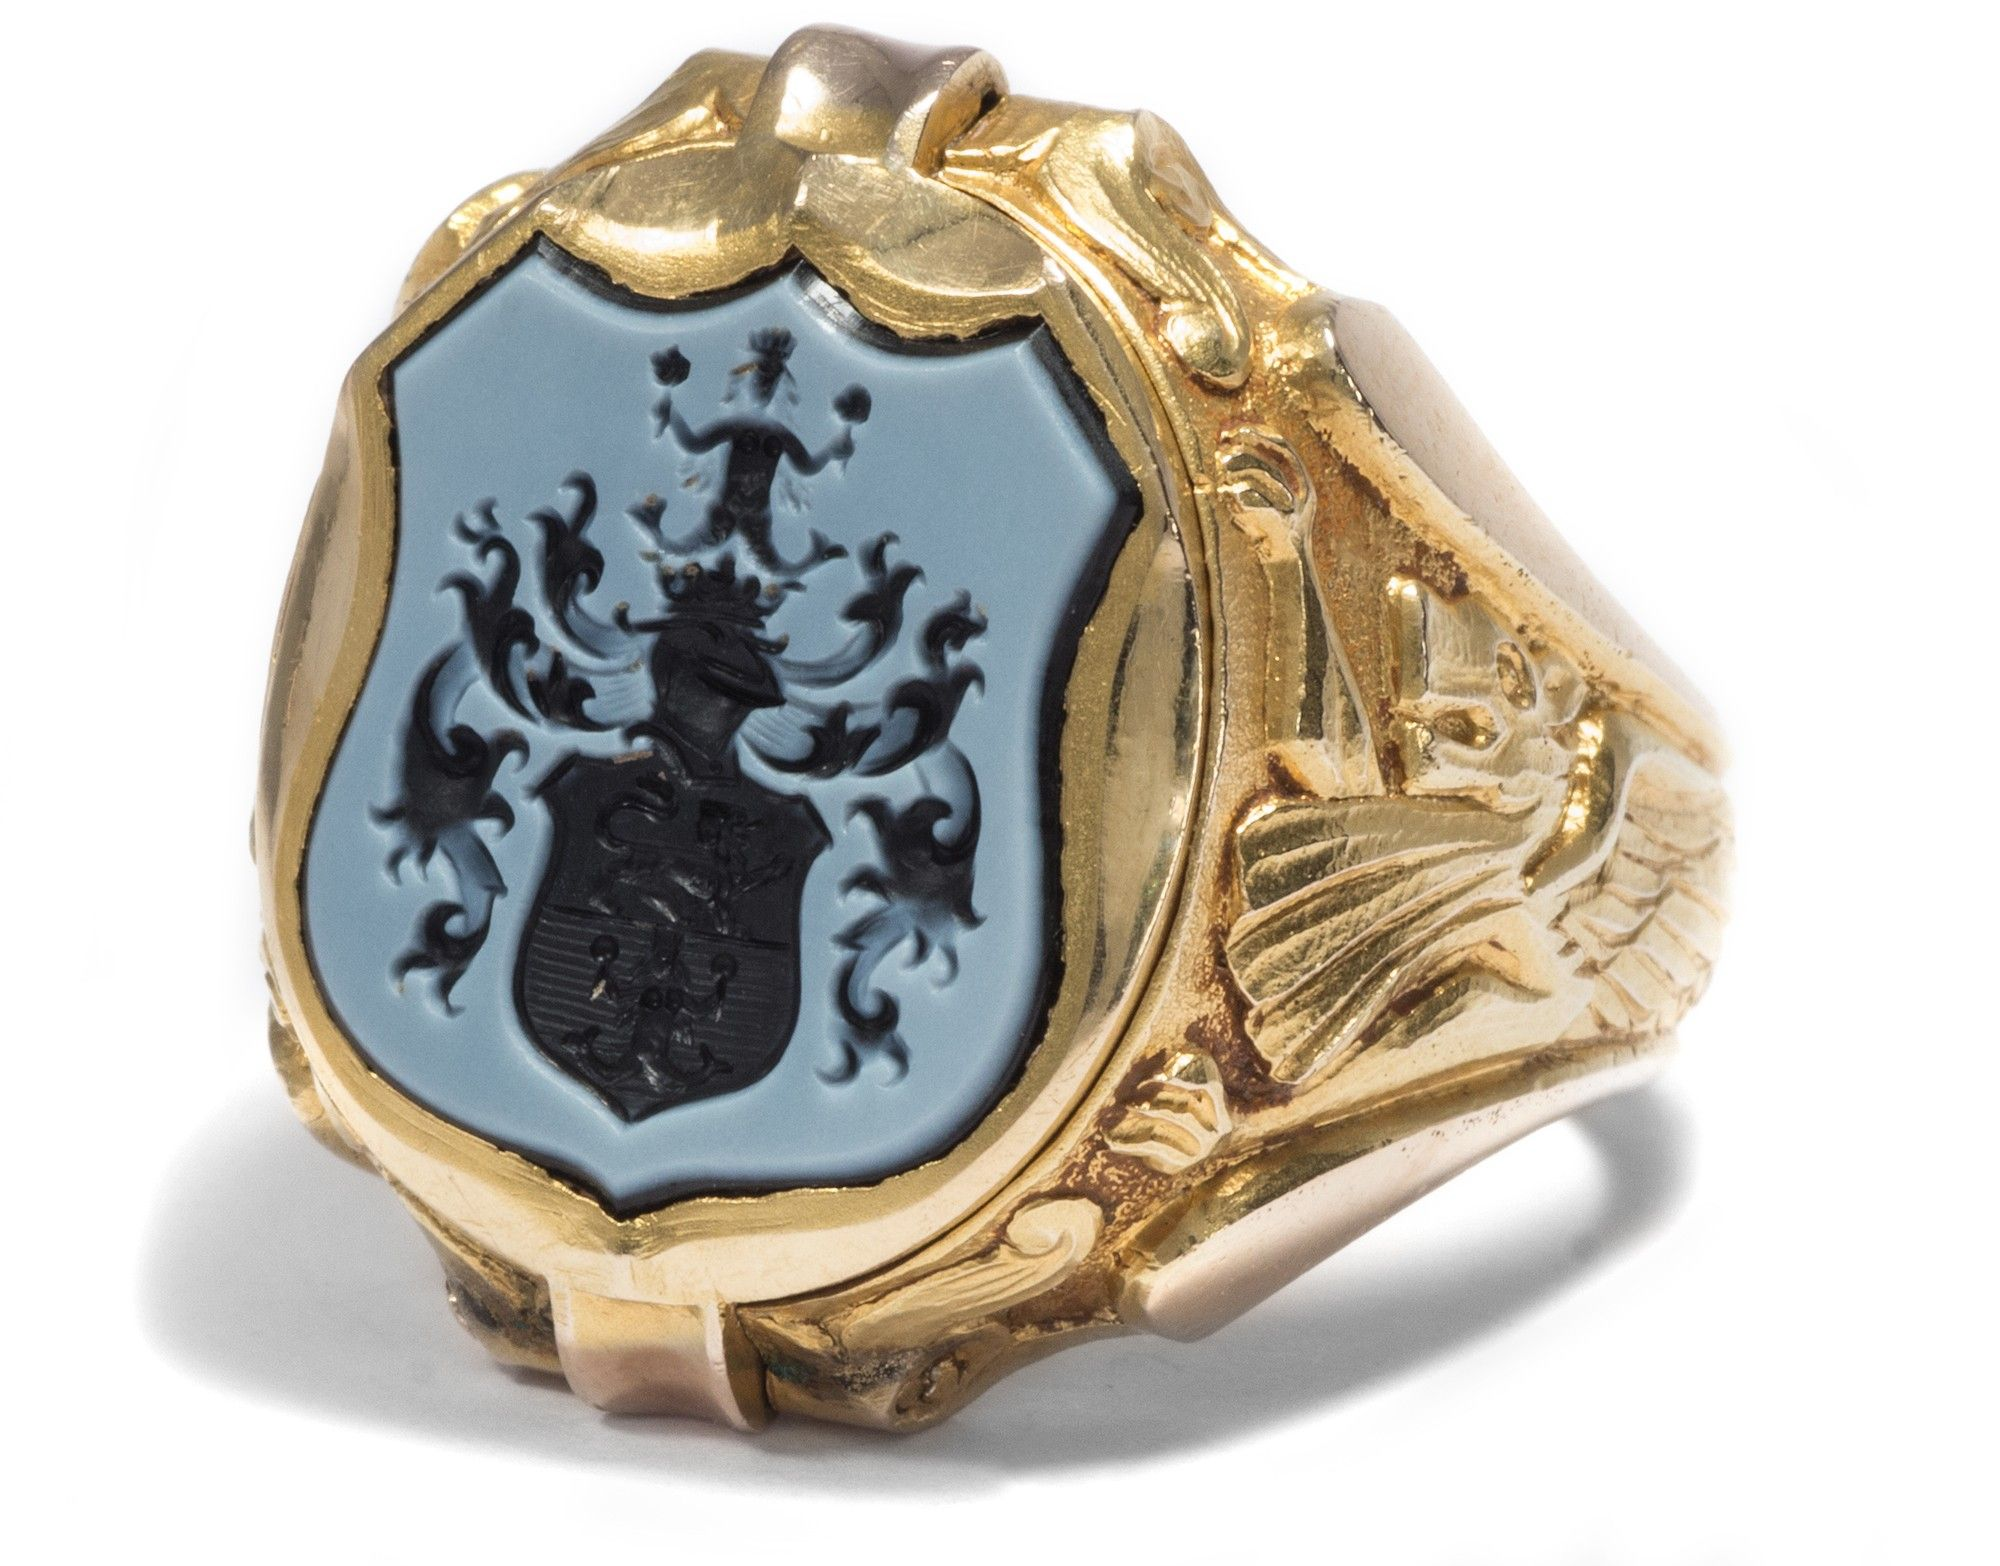 Um 1910 Wappen Ring 585 Gold & Lagenstein Giftring Herrenring